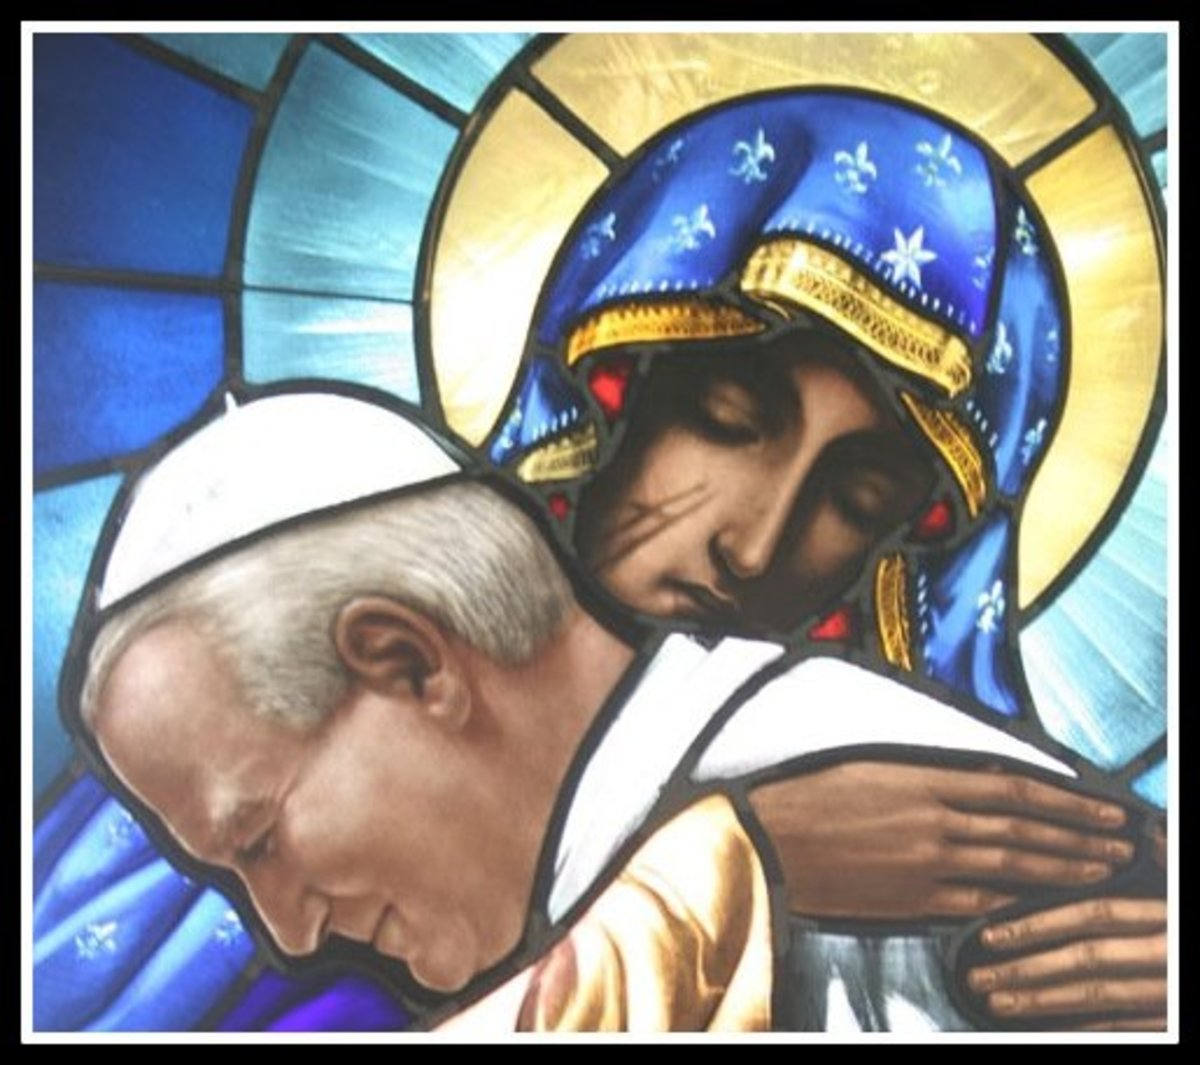 St. John Paul II reigned as pope of the Roman Catholic Church for almost 27 years.  He was formally beatified 1 May 2011 by Pope Benedict and canonized April 27, 2014 by Pope Francis.